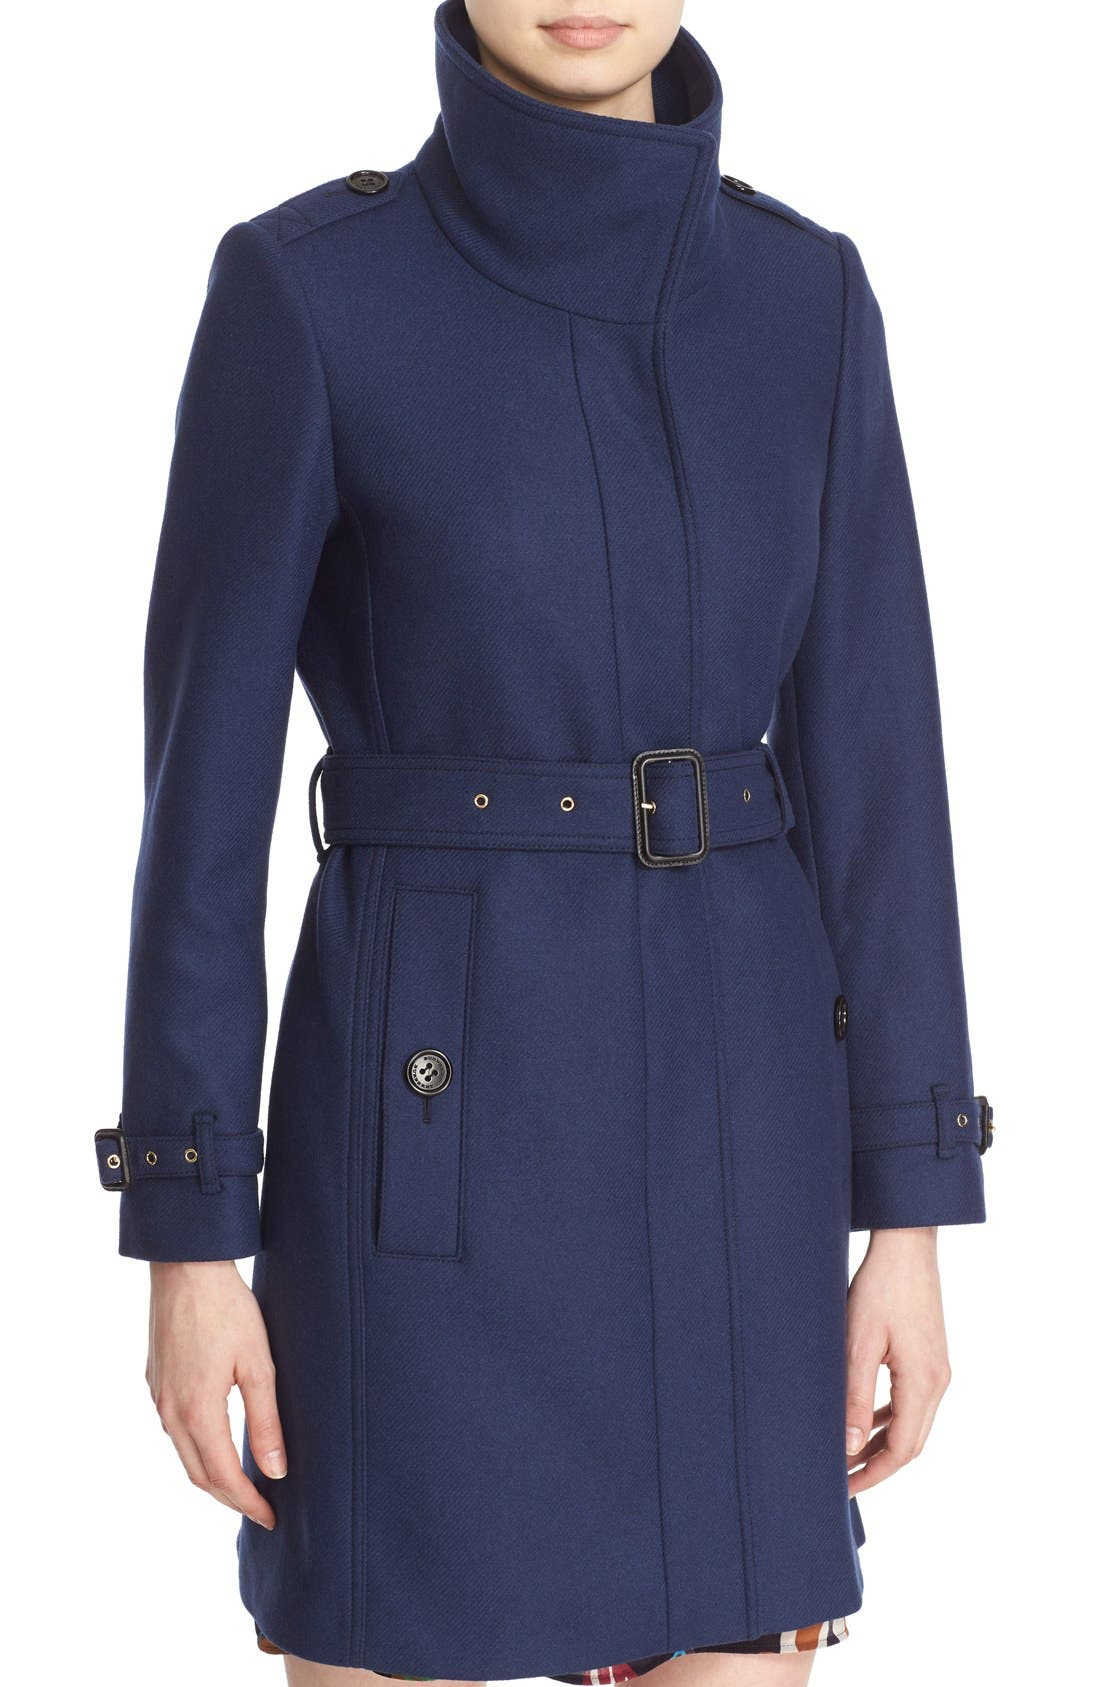 Gibbsmoore Funnel Collar Trench Coat,                             Alternate thumbnail 7, color,                             466